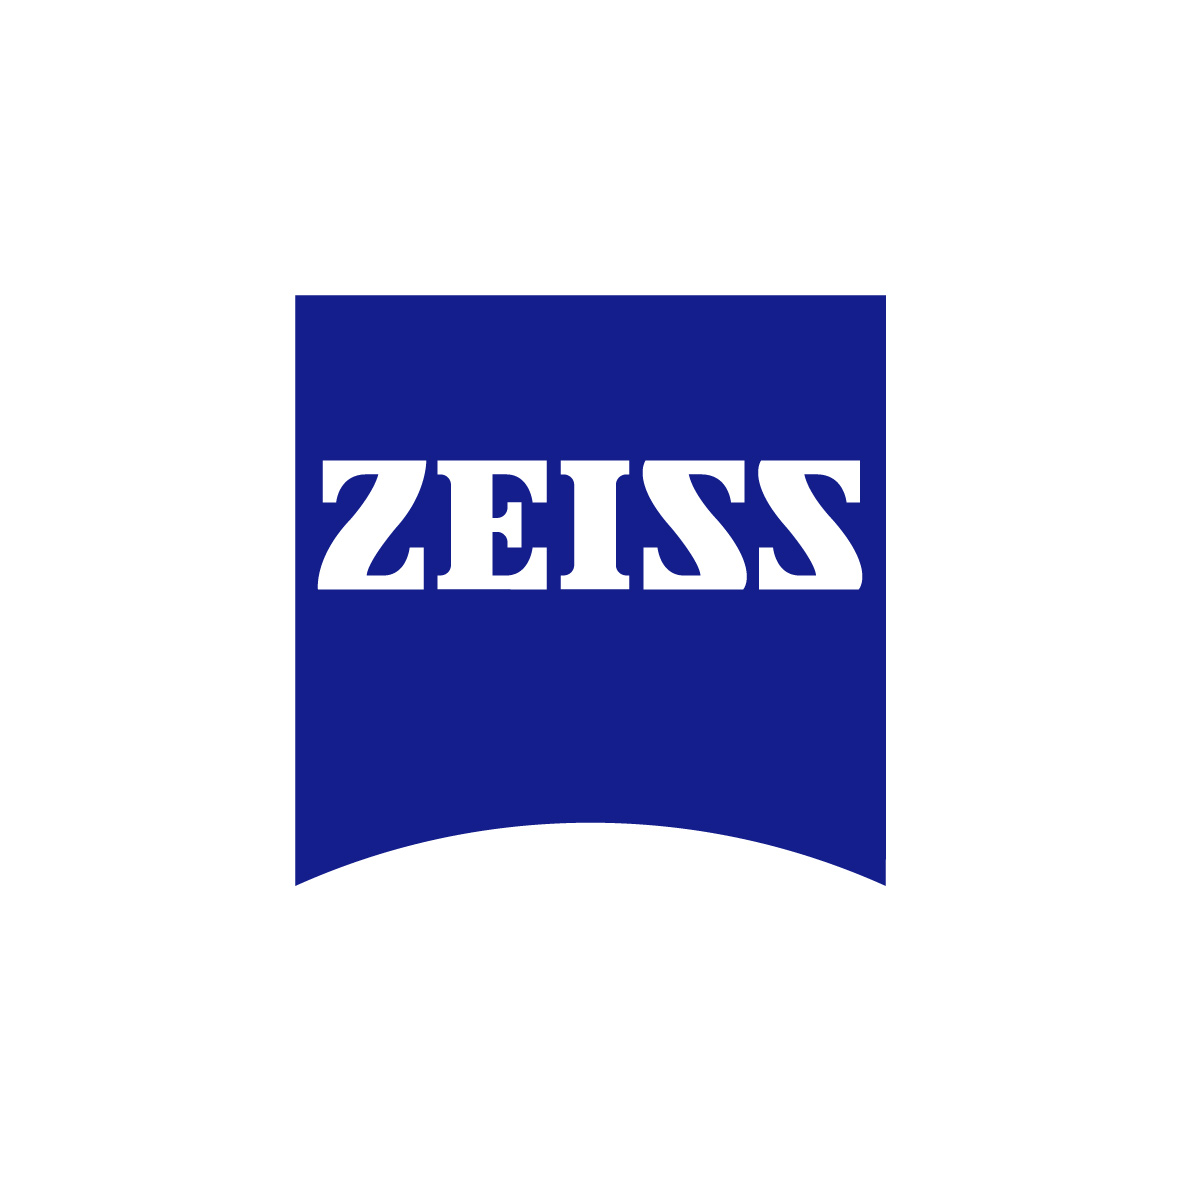 ZEISS…Confidence In The Toughest Conditions